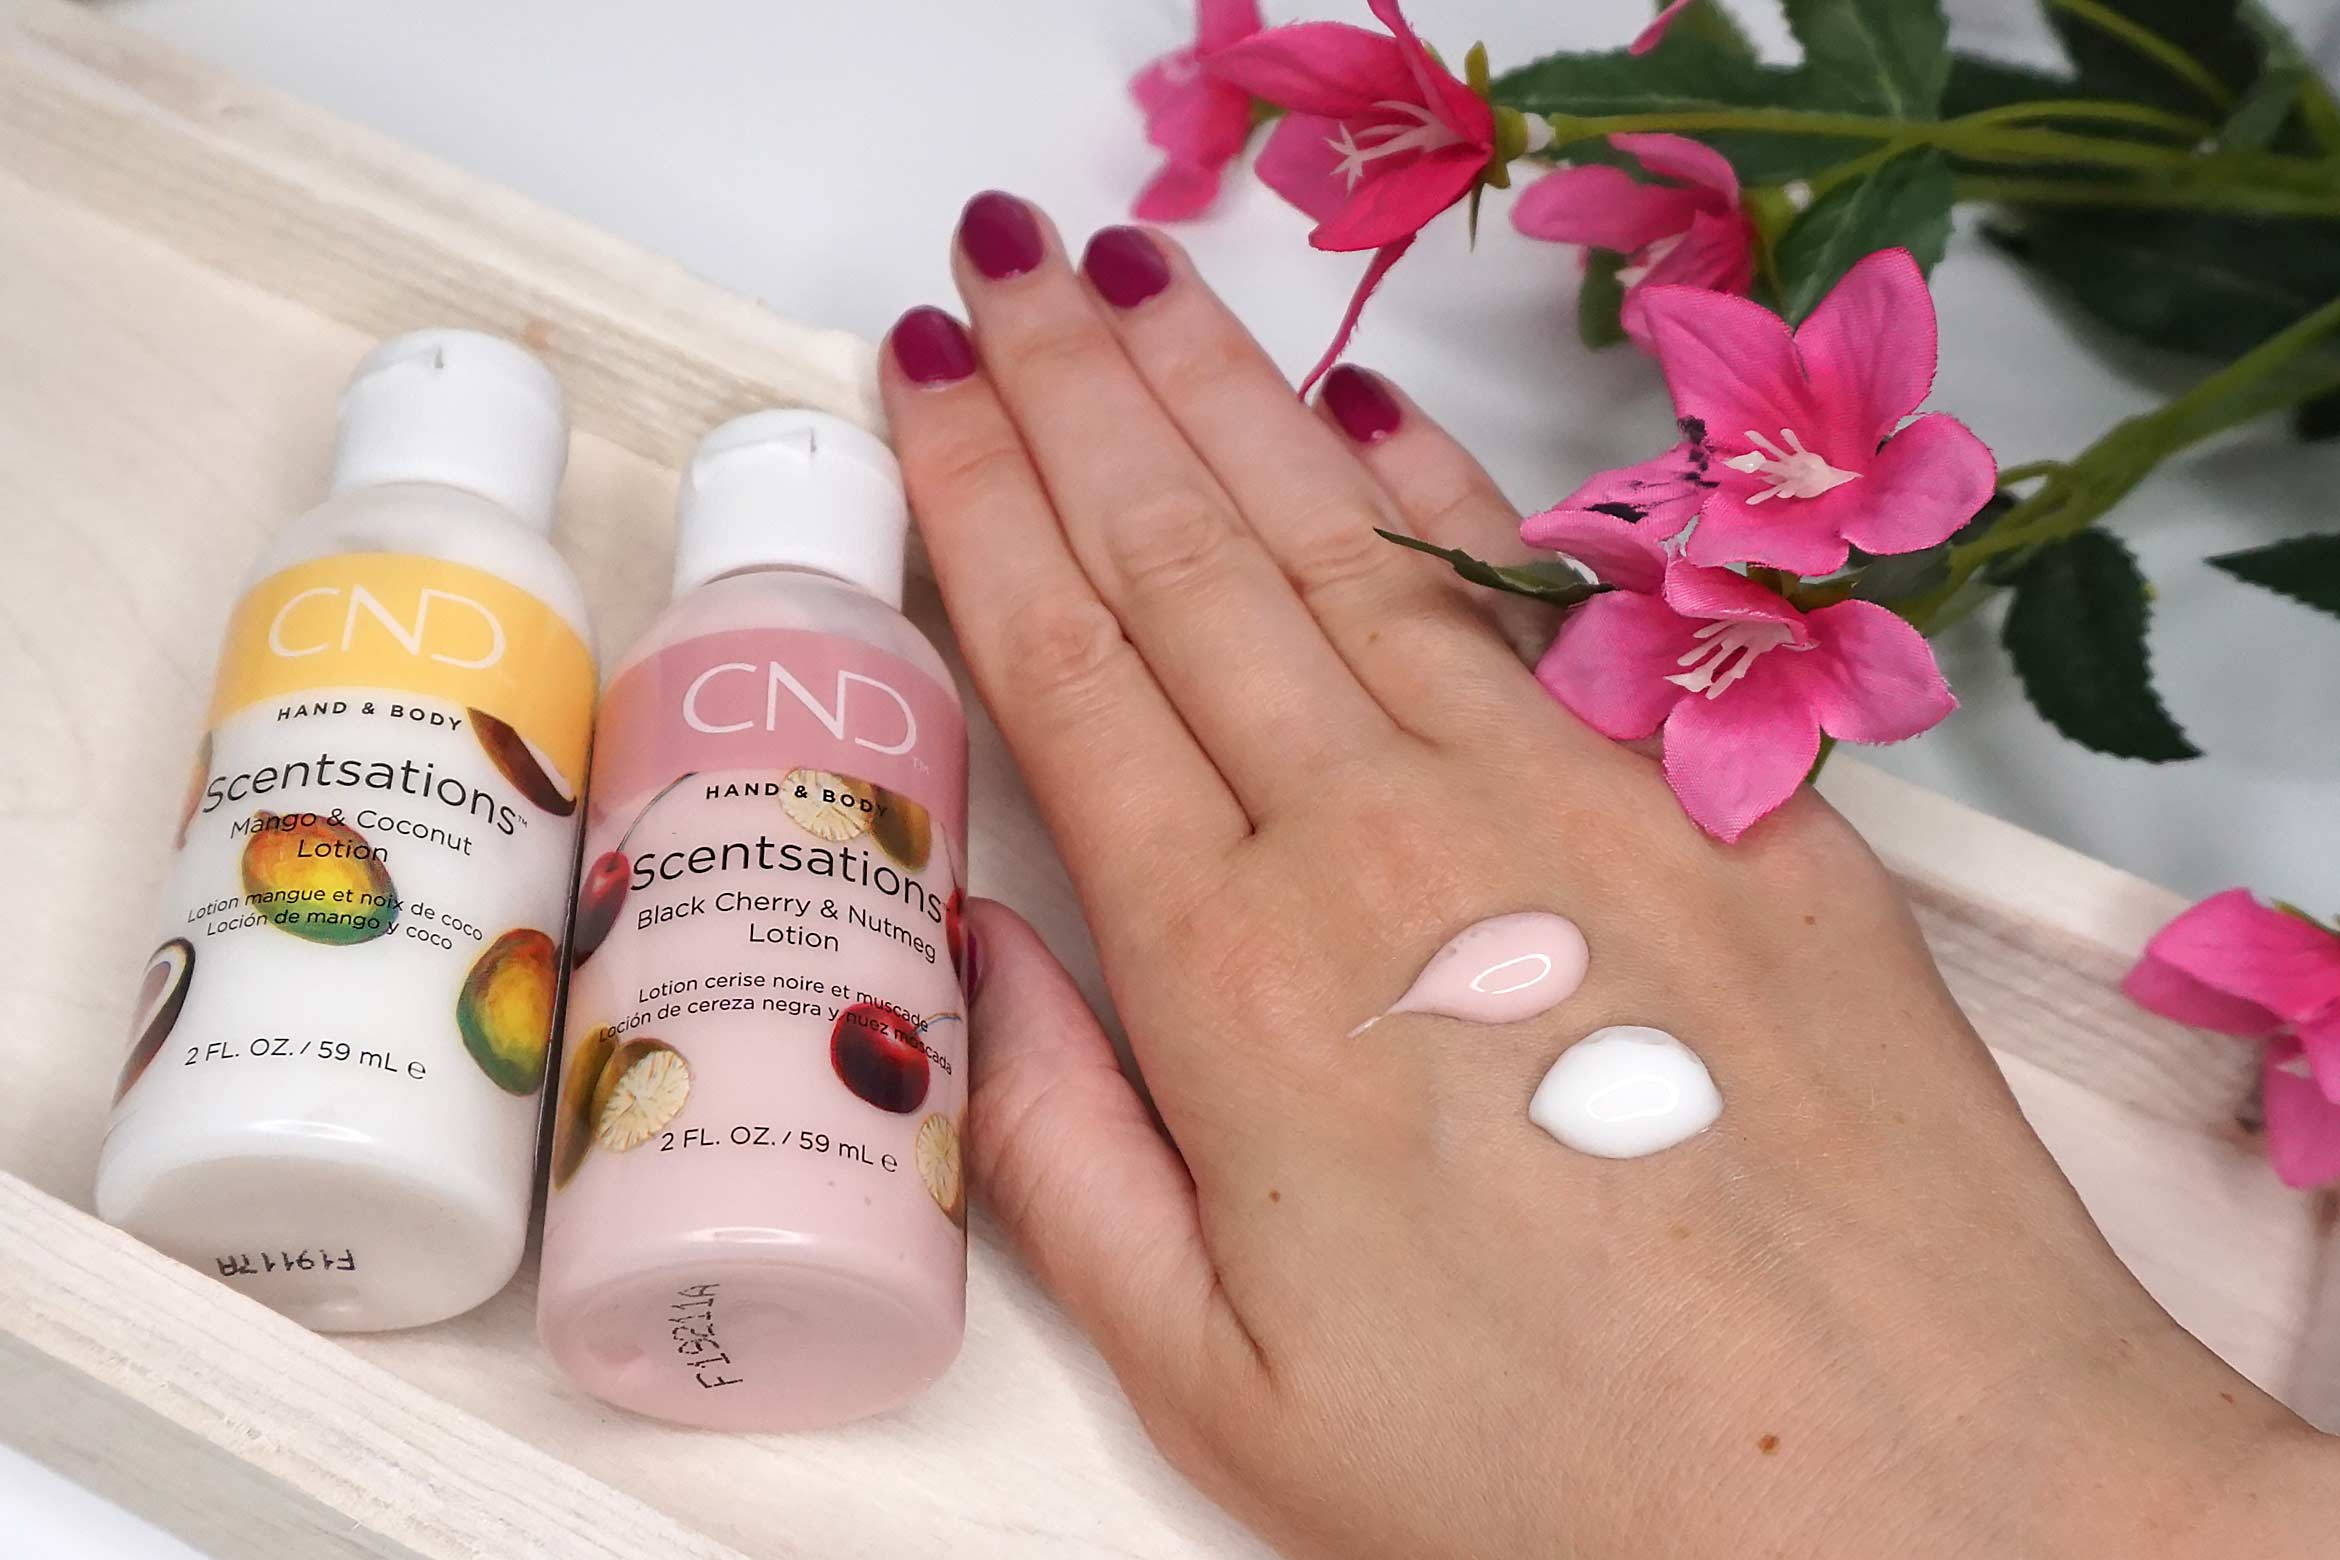 CND-Scentsations-lotion-review-2